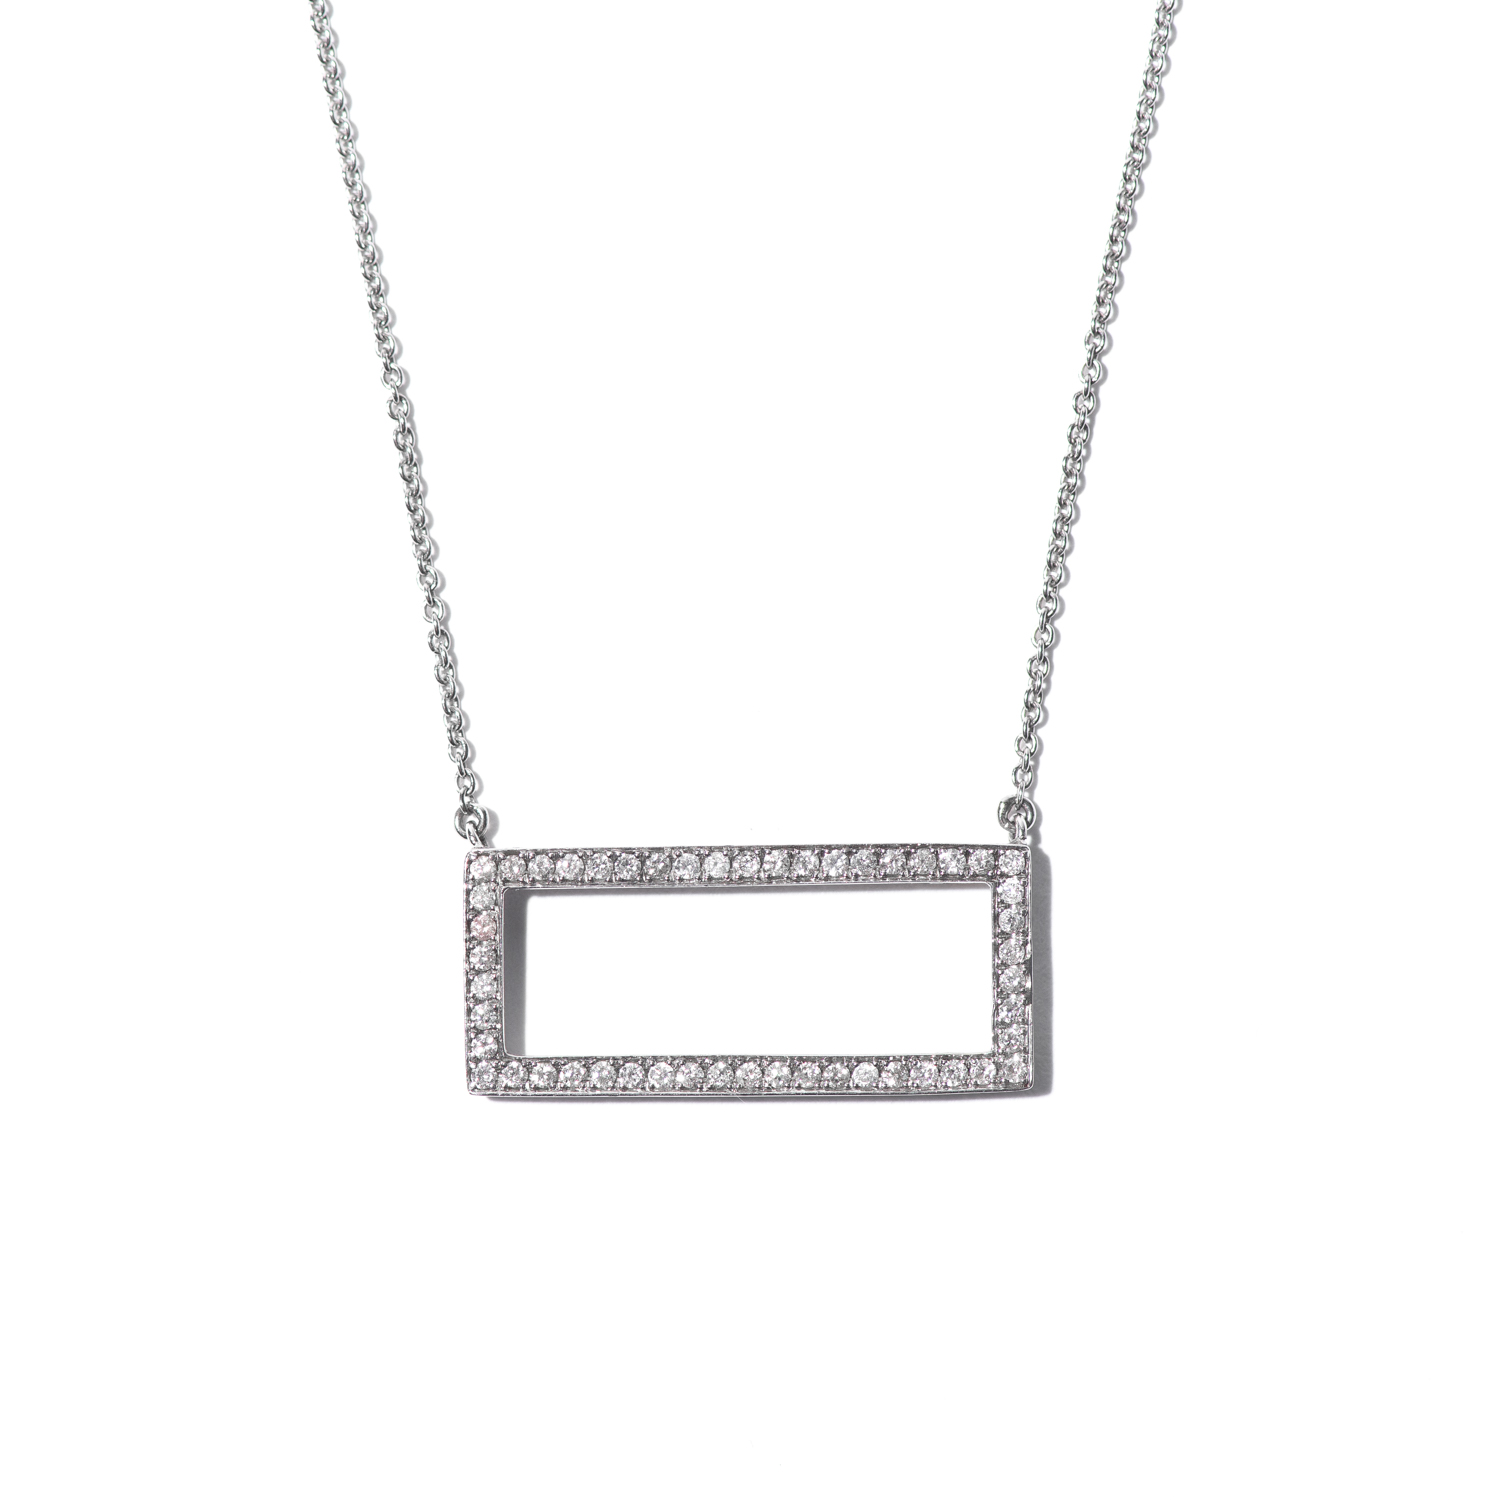 Design Twenty. - Geometric Diamond Necklace in White Golld